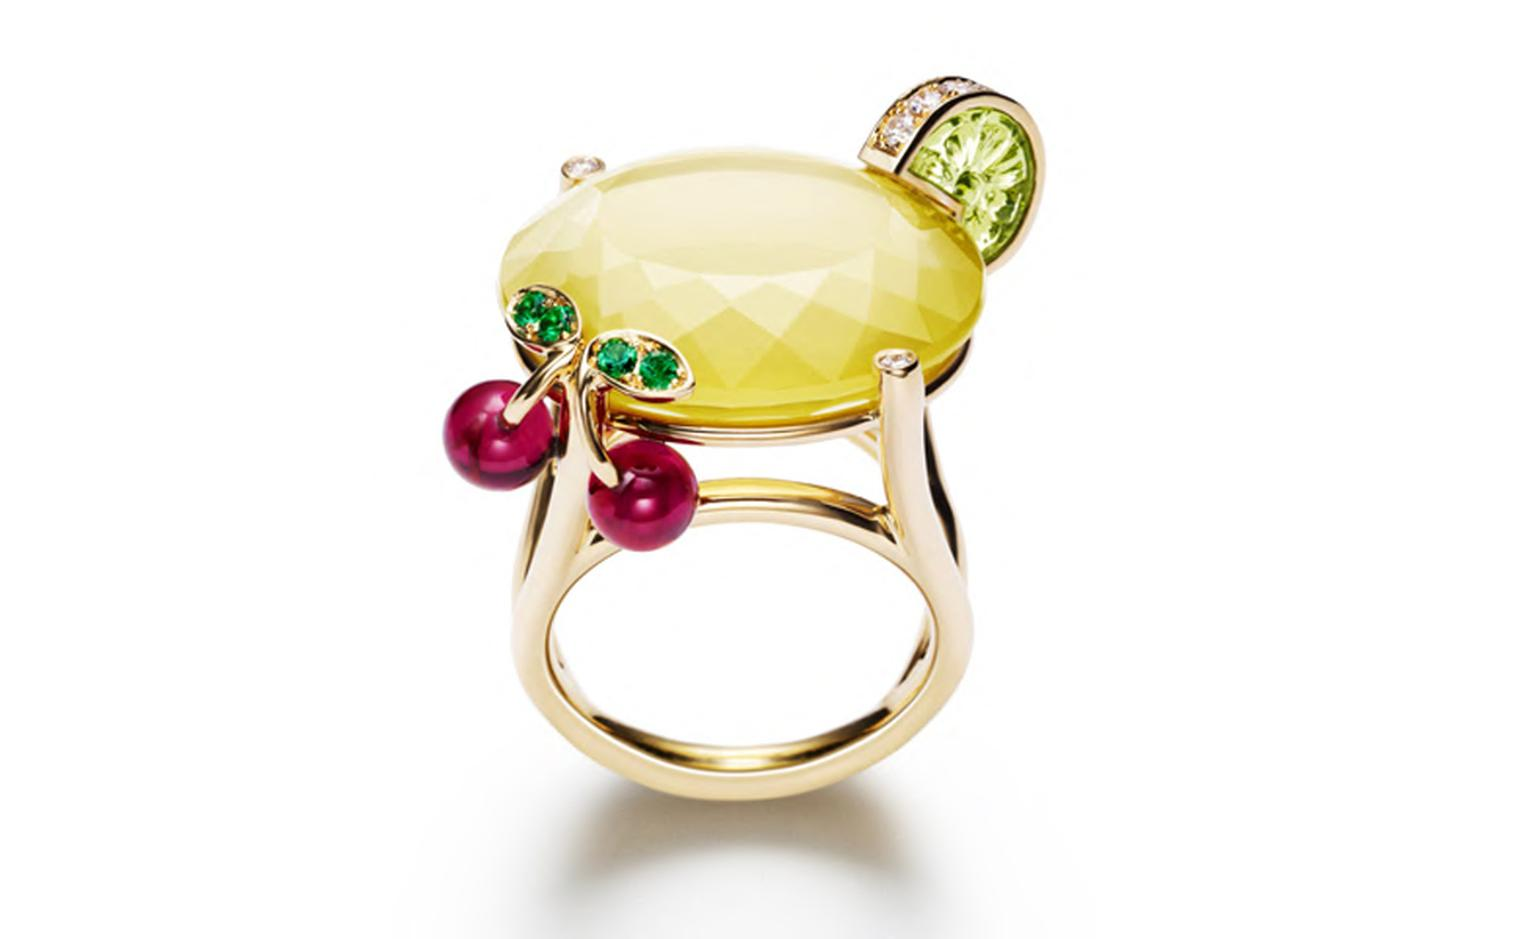 PIAGET, Limelight cocktail inspiration, Lemon Fizz ring, inspiration in white gold and diamonds, peridot, yellow quartz, emeralds and rubellites. POA